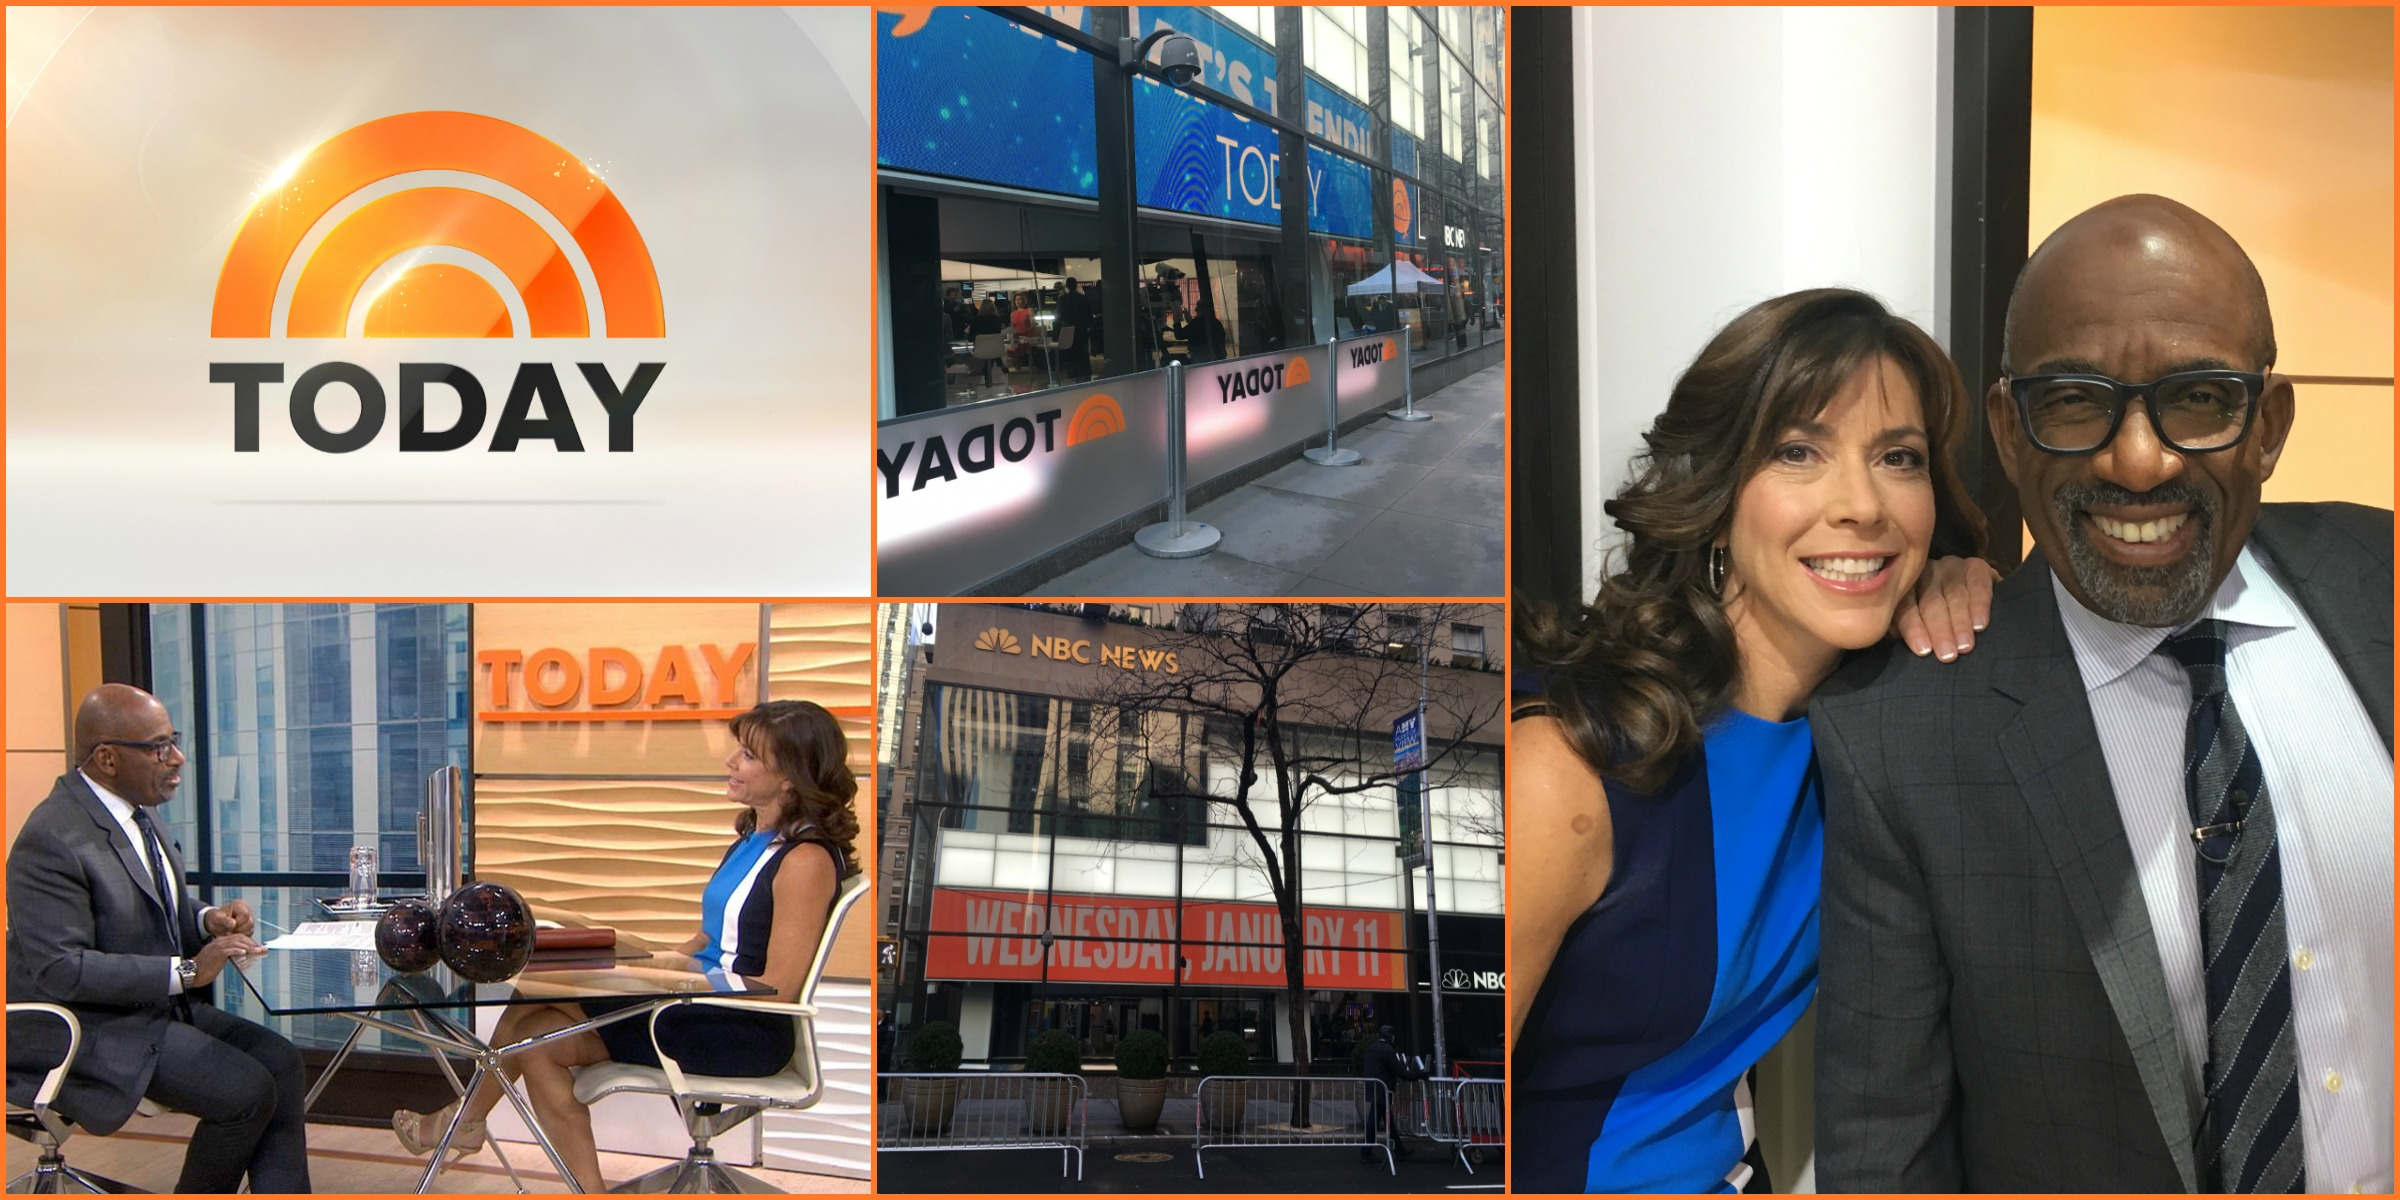 Terri on The Today Show 01.11.17